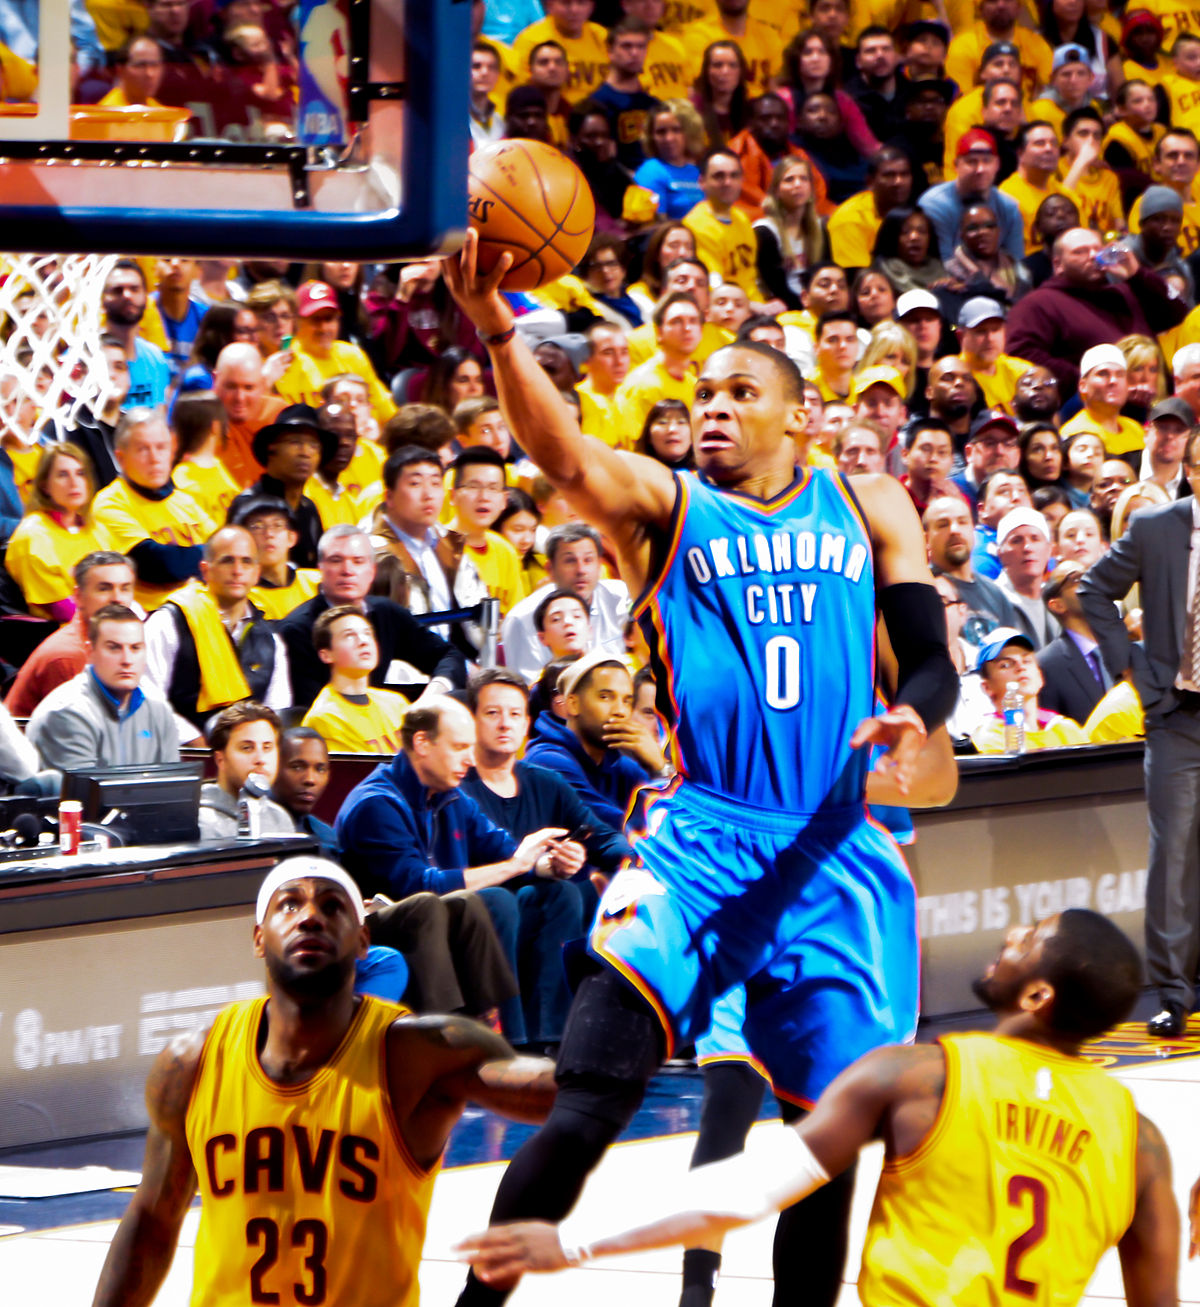 Russell Westbrook shoots against Cavs (cropped).jpg